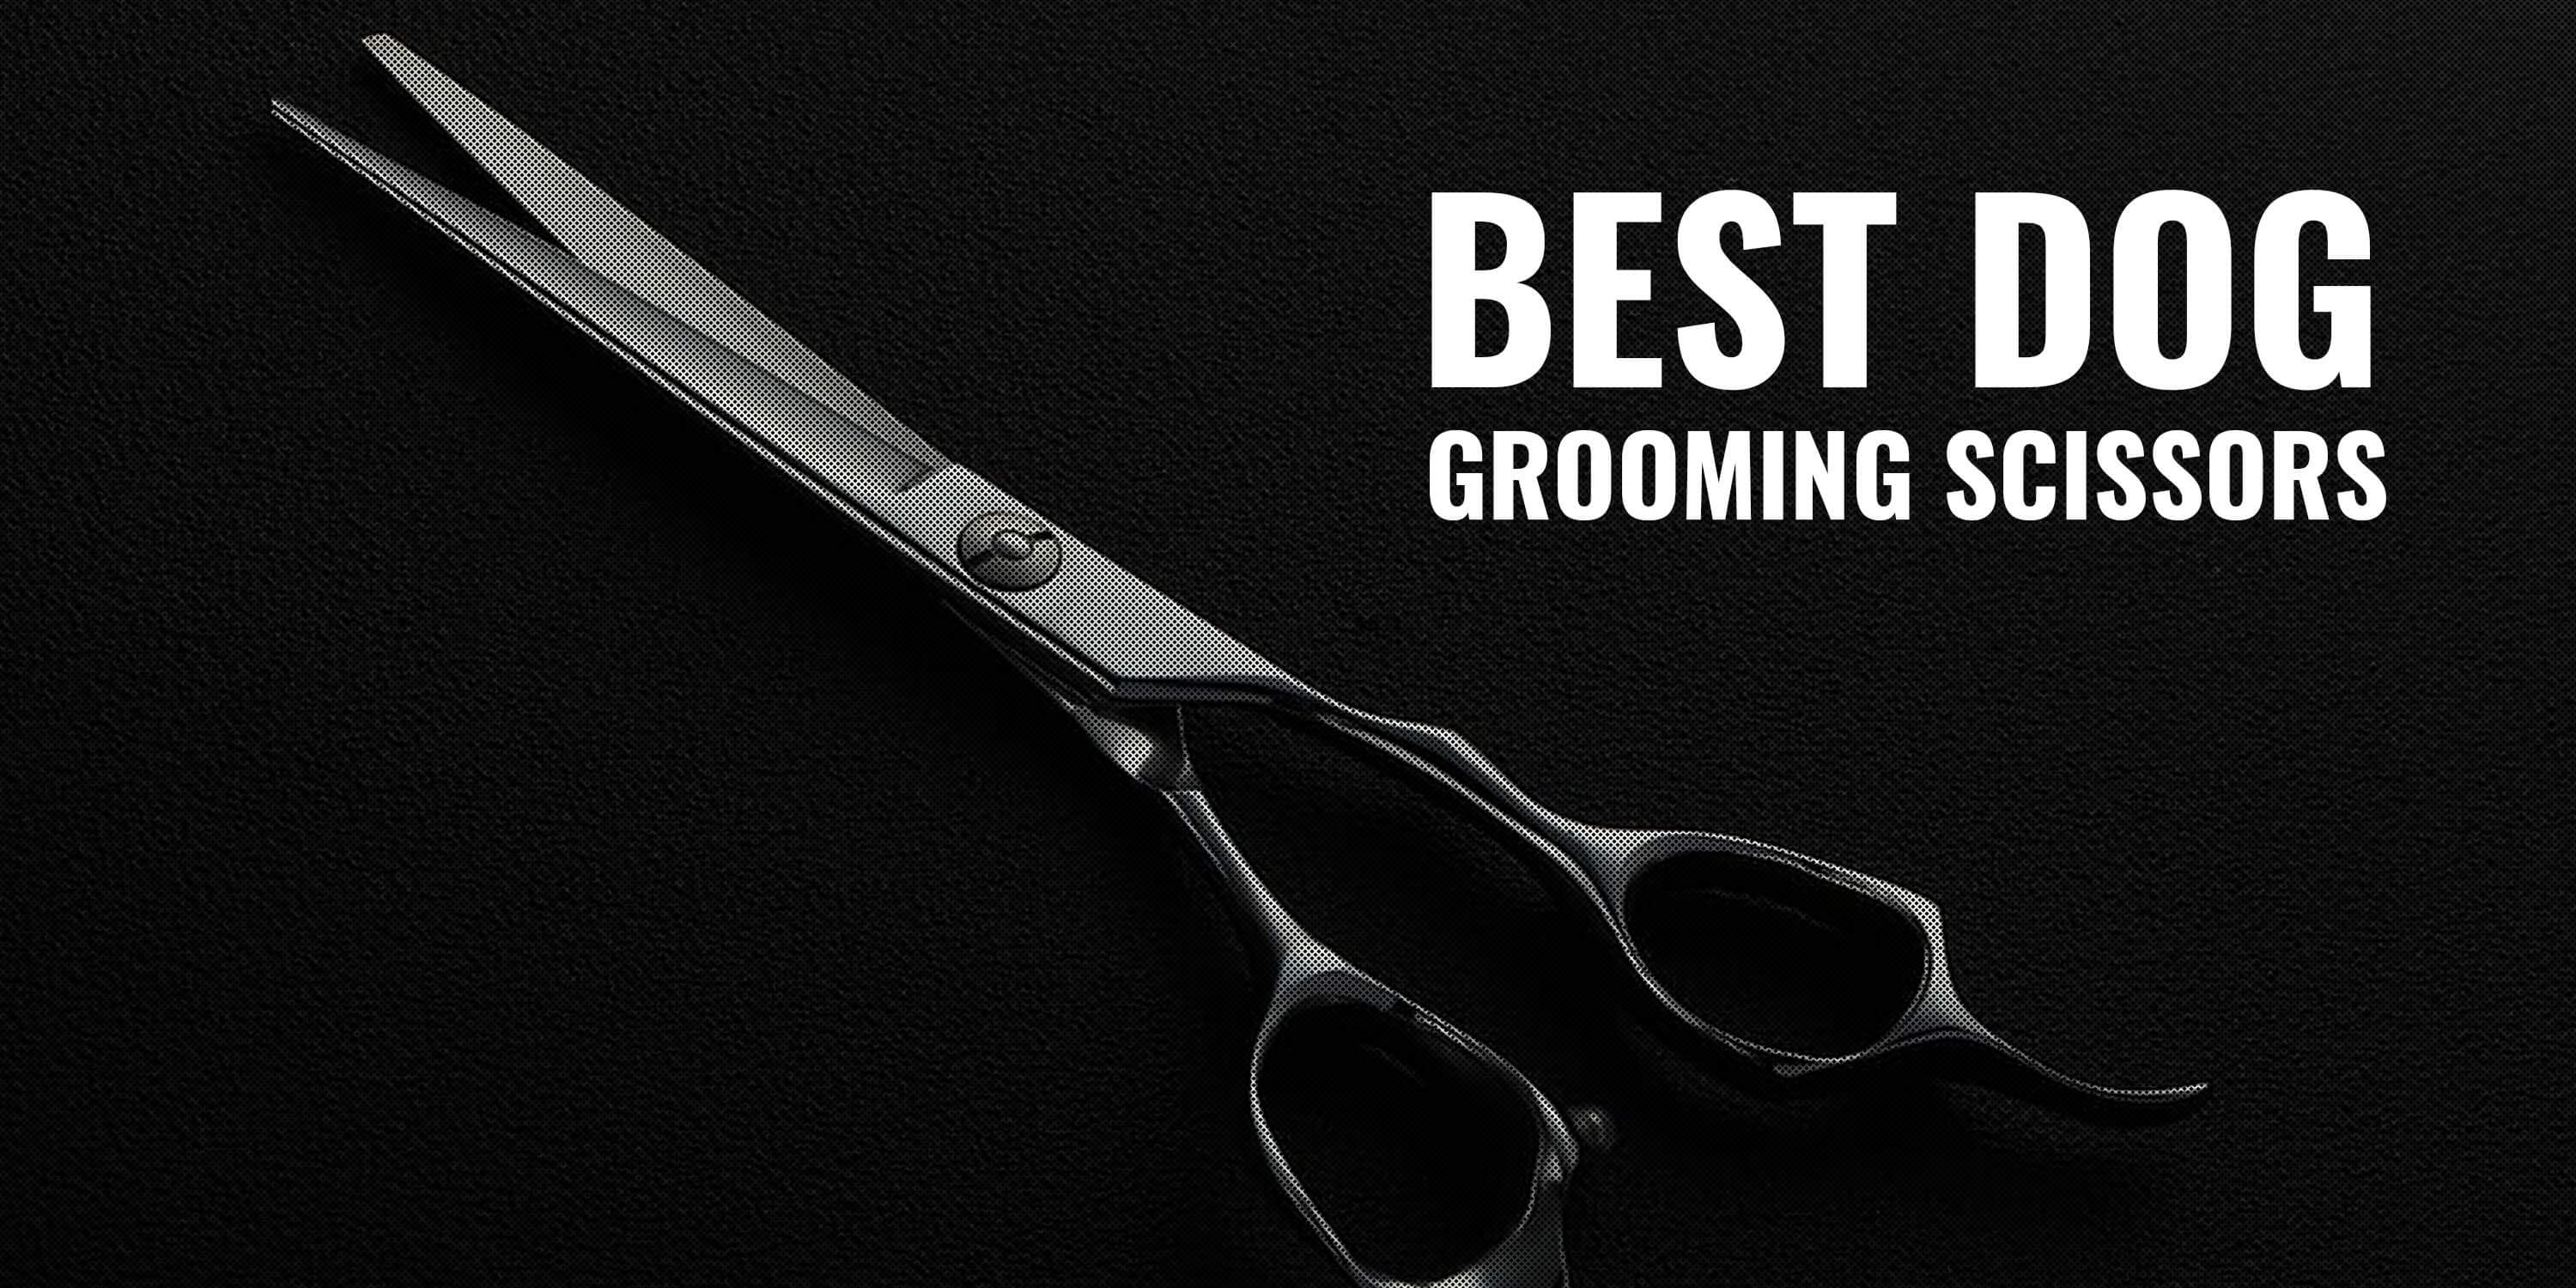 6.5 Inch Curved Scissors Use Curved Shears for Cat Shears and Small Dog Shears Or Any Breed Trimming Cuts Sharf Gold Touch Grooming Pet Shear